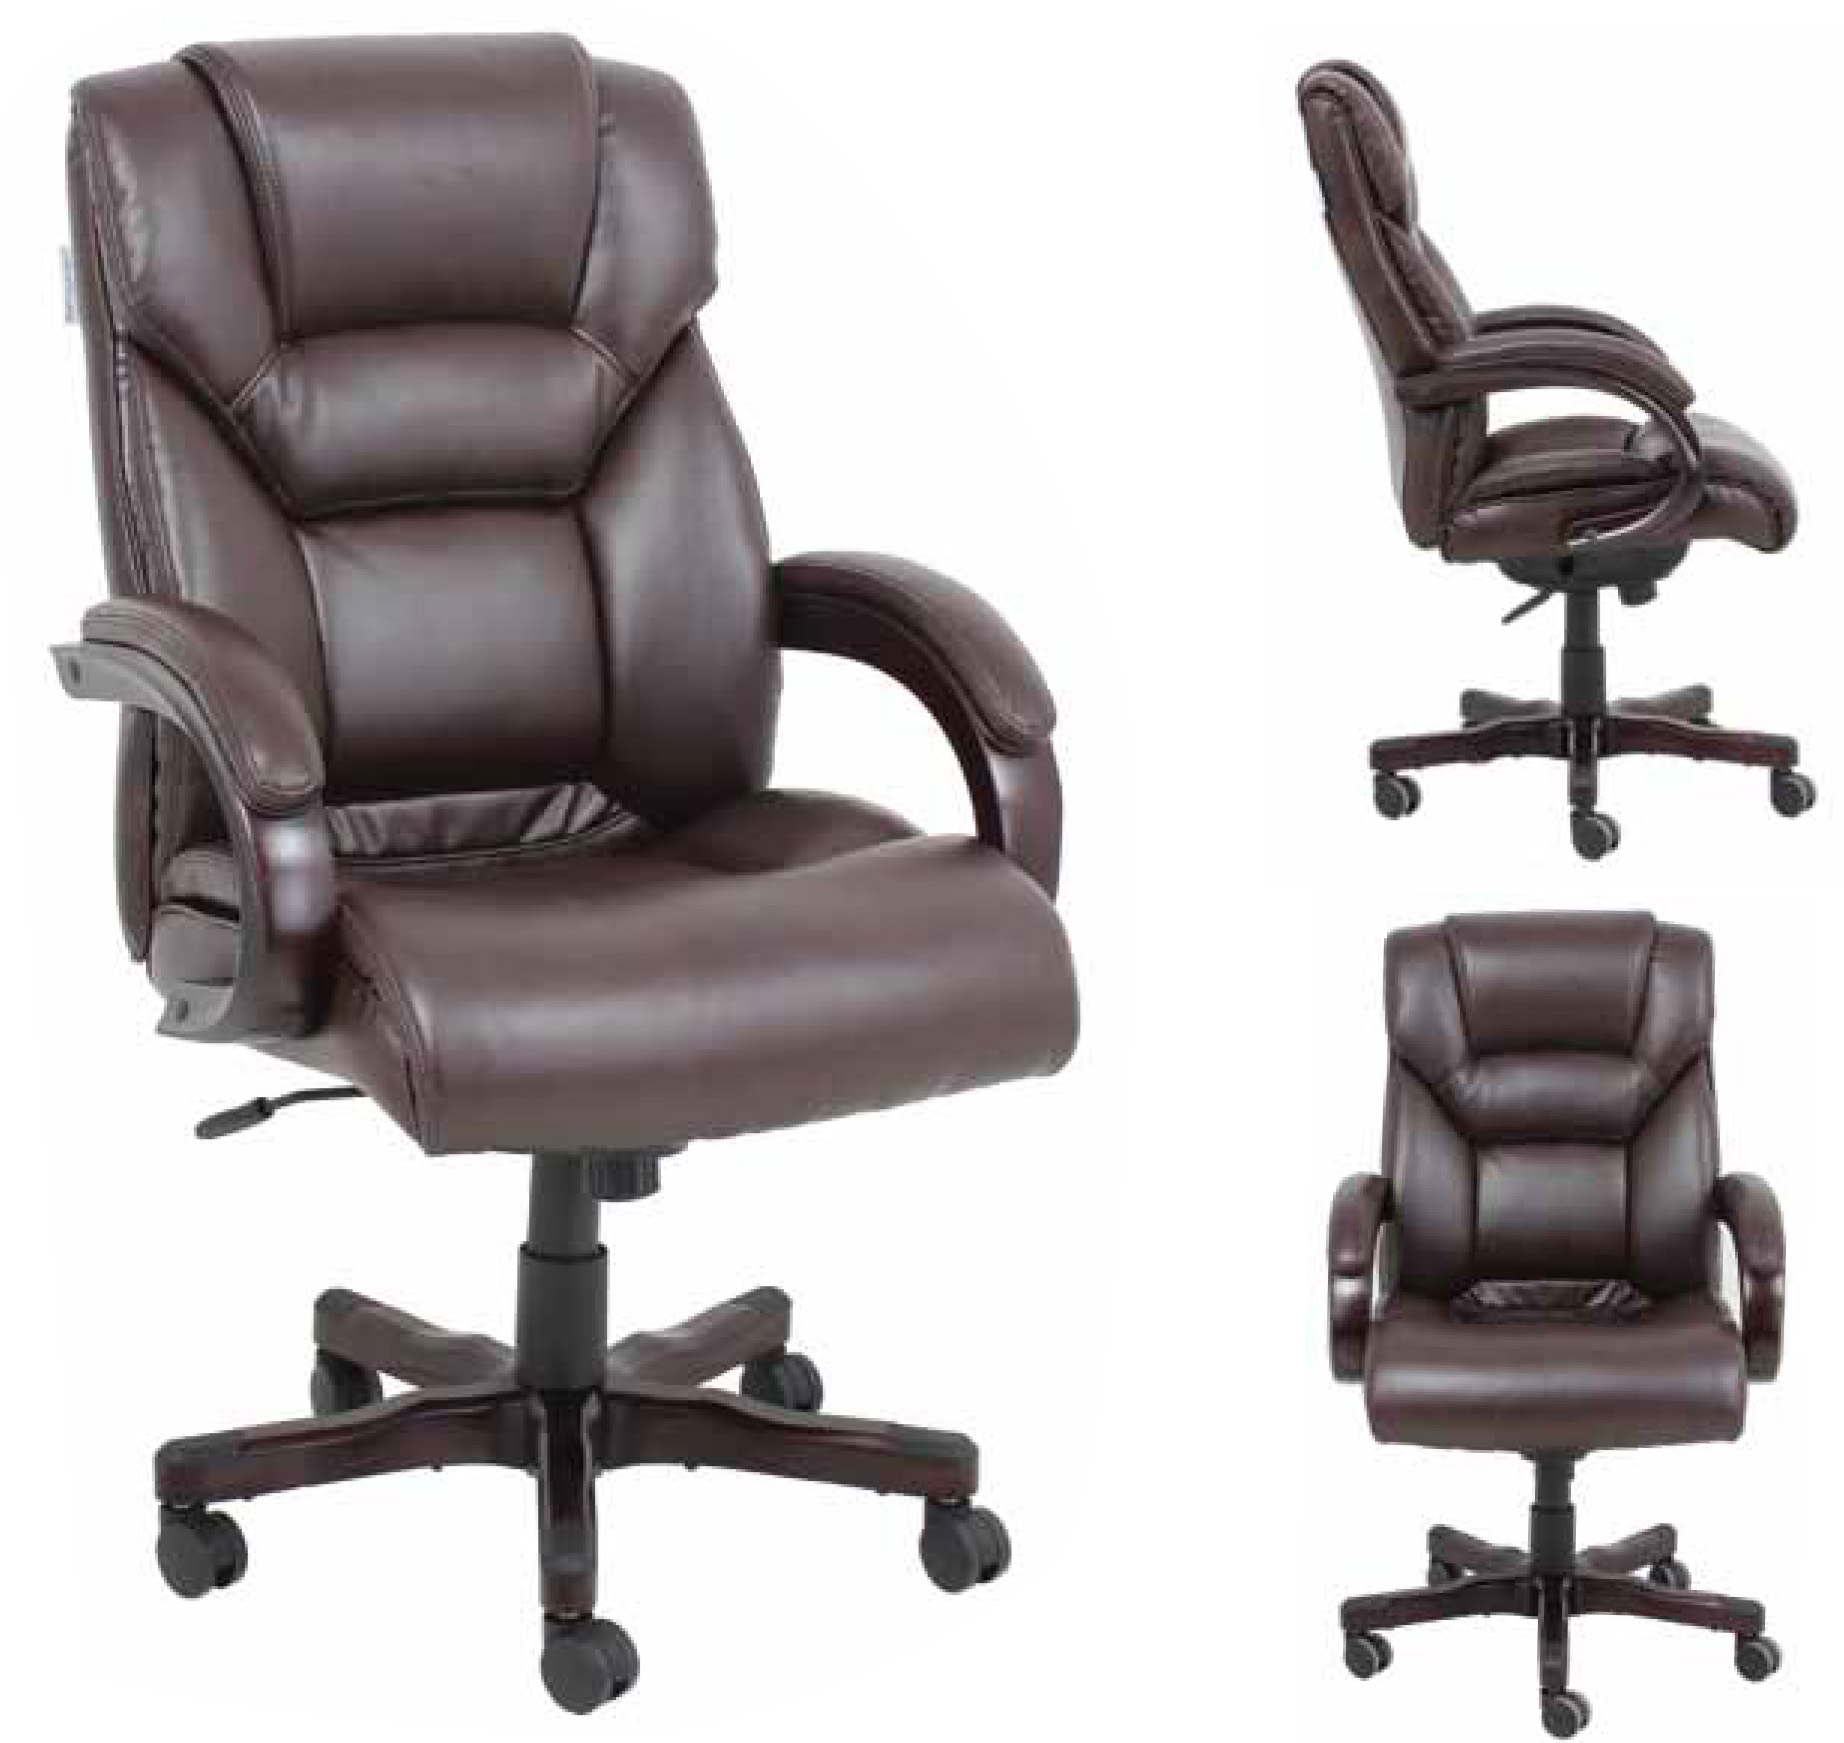 chairs products leather aluminum high group dsc herman collections miller desk cafc eames available chair executive